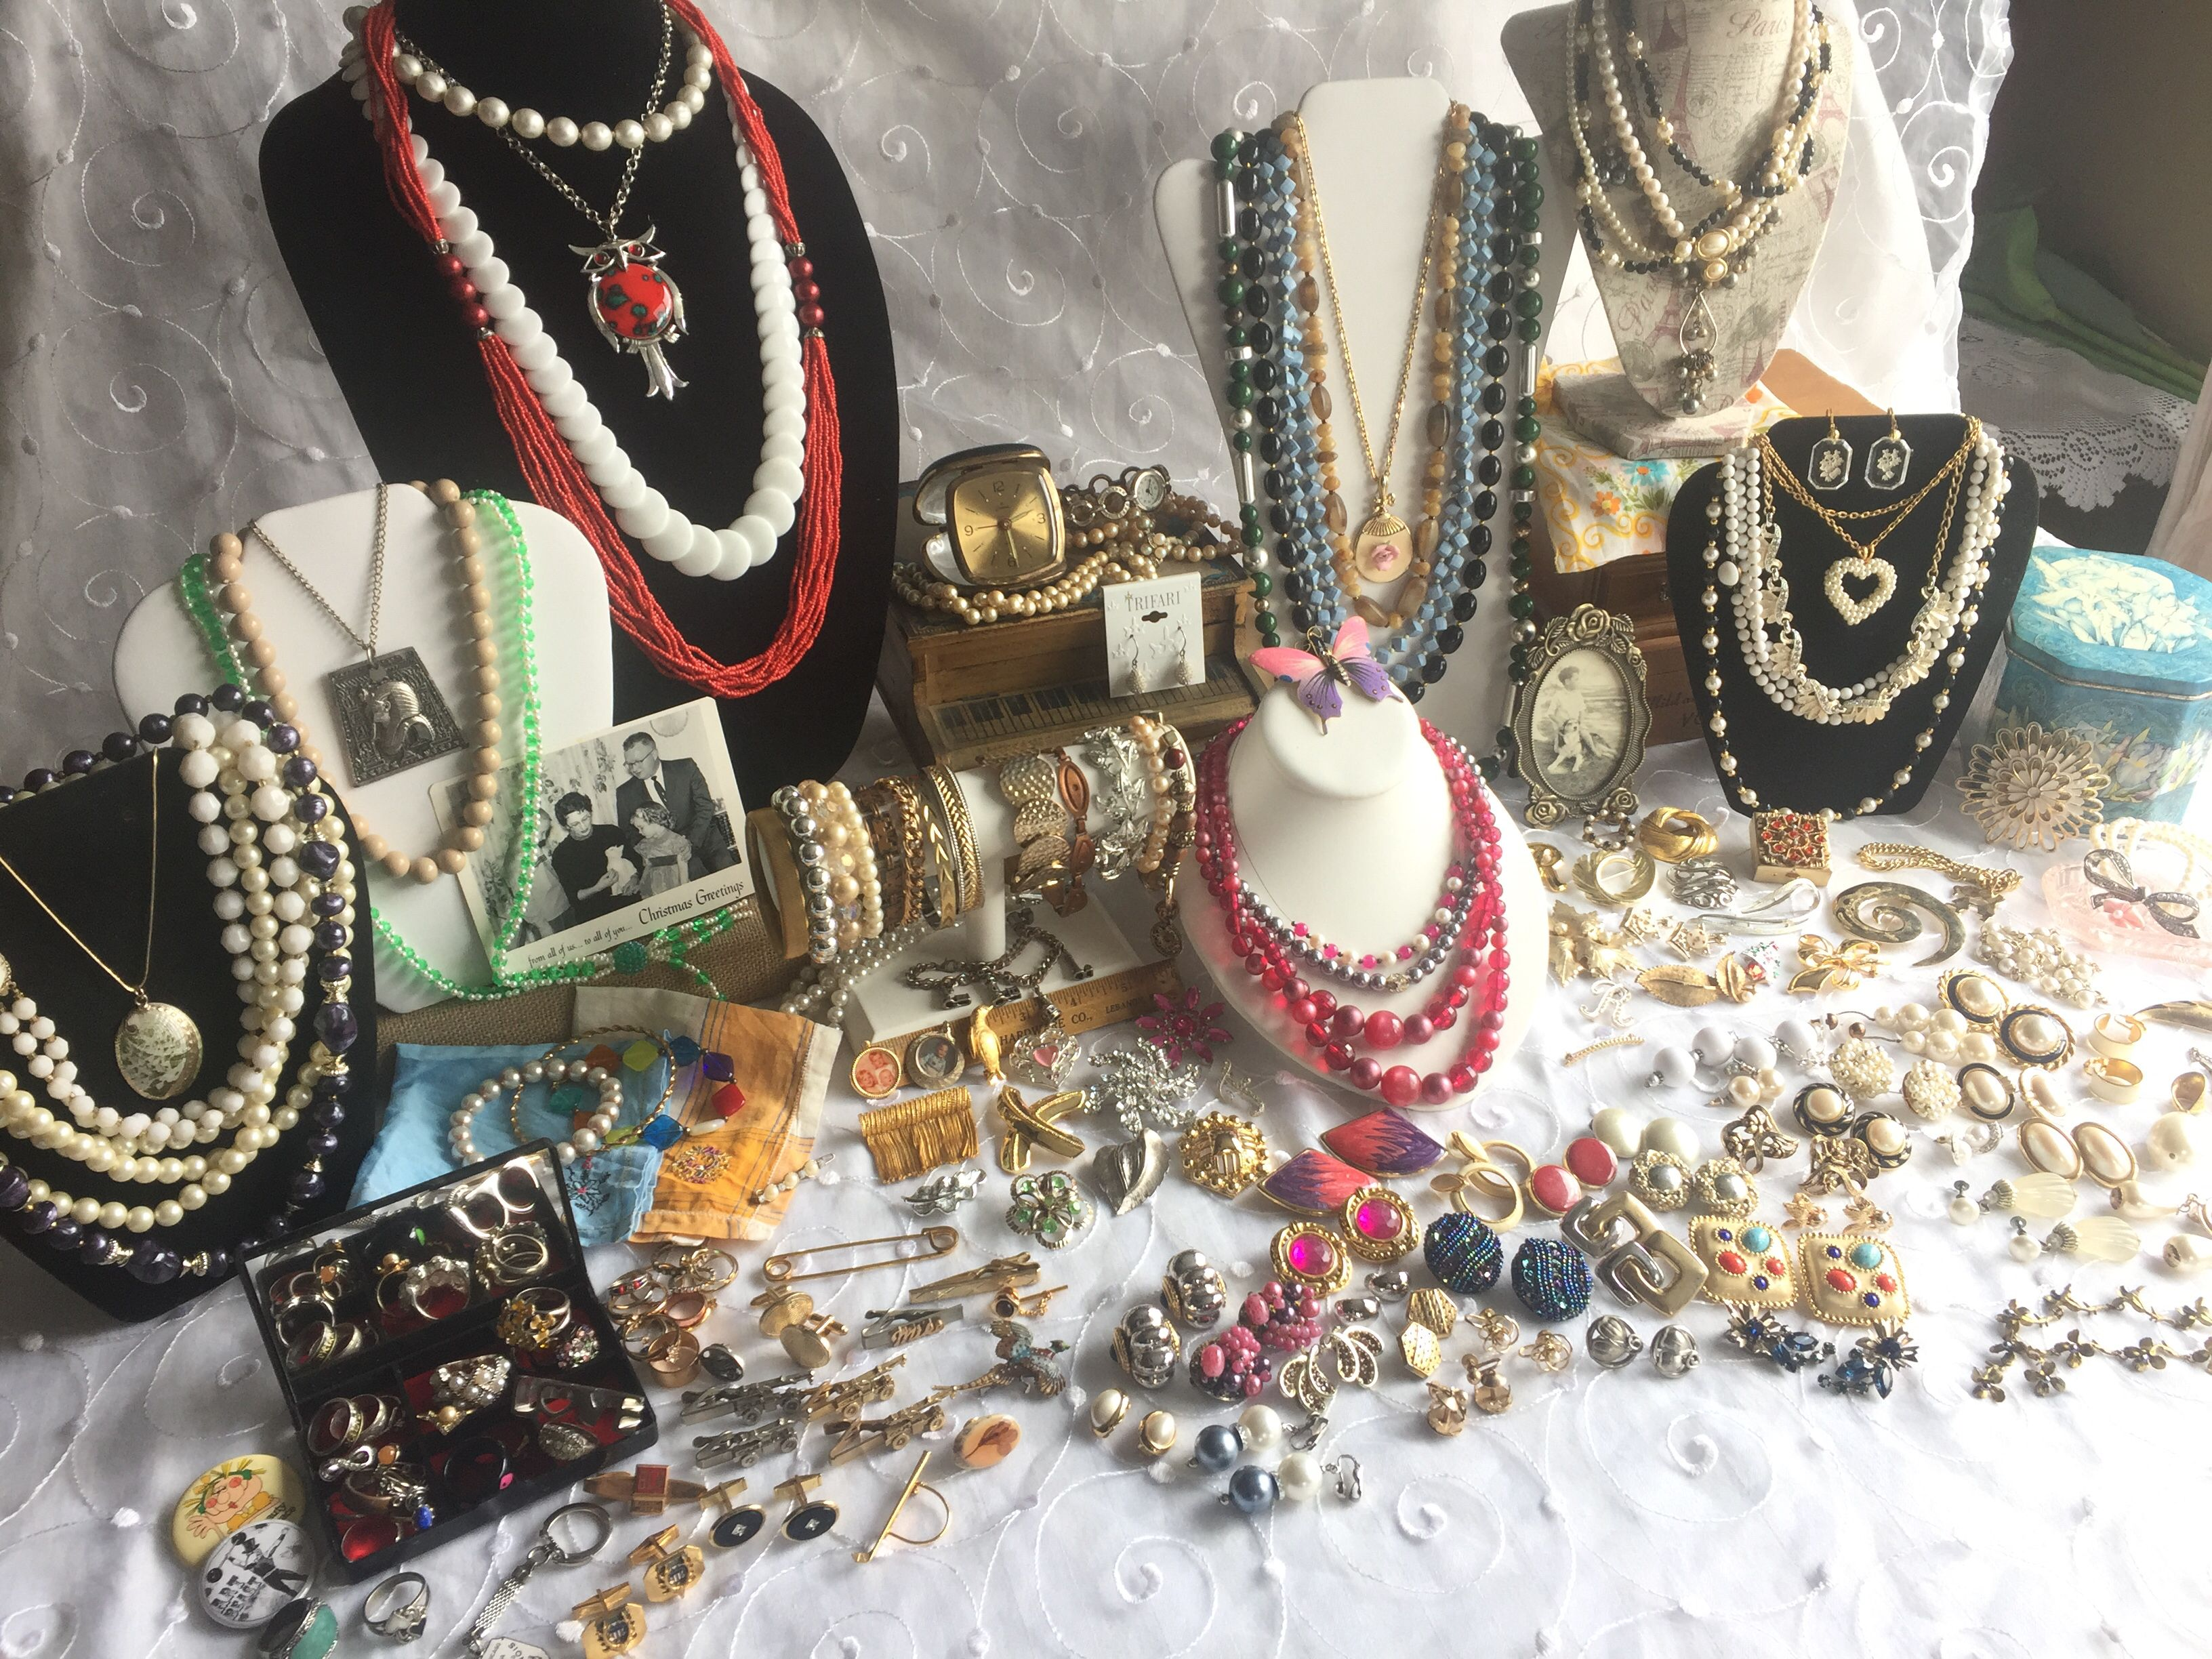 33+ Where can i sell my antique jewelry ideas in 2021